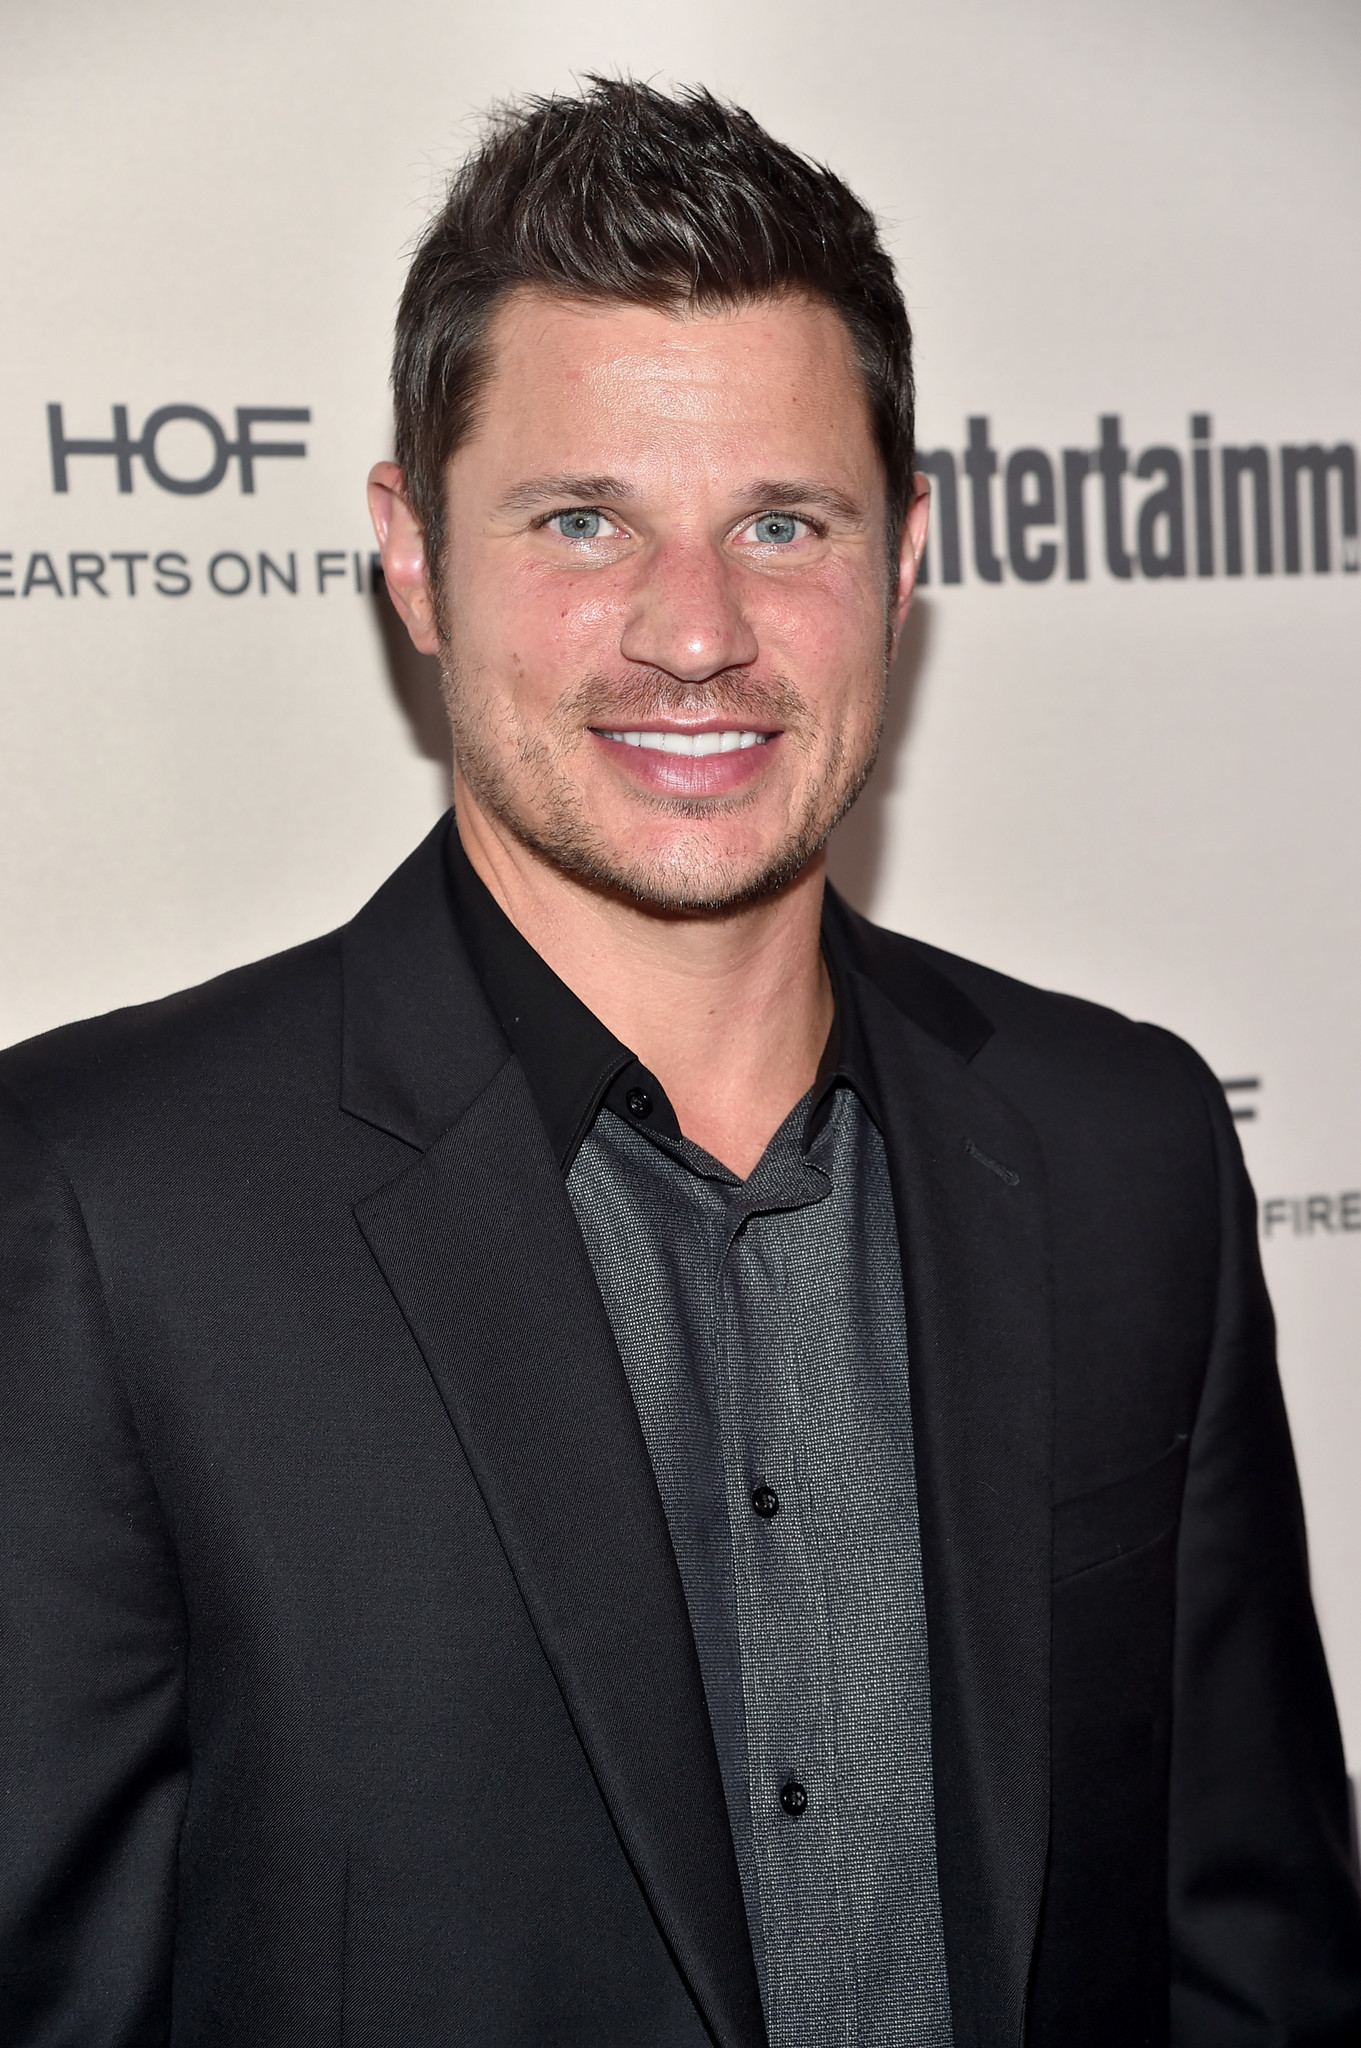 Ohio's marijuana vote could make Nick Lachey a weed kingpin. Yes, that Nick Lachey.